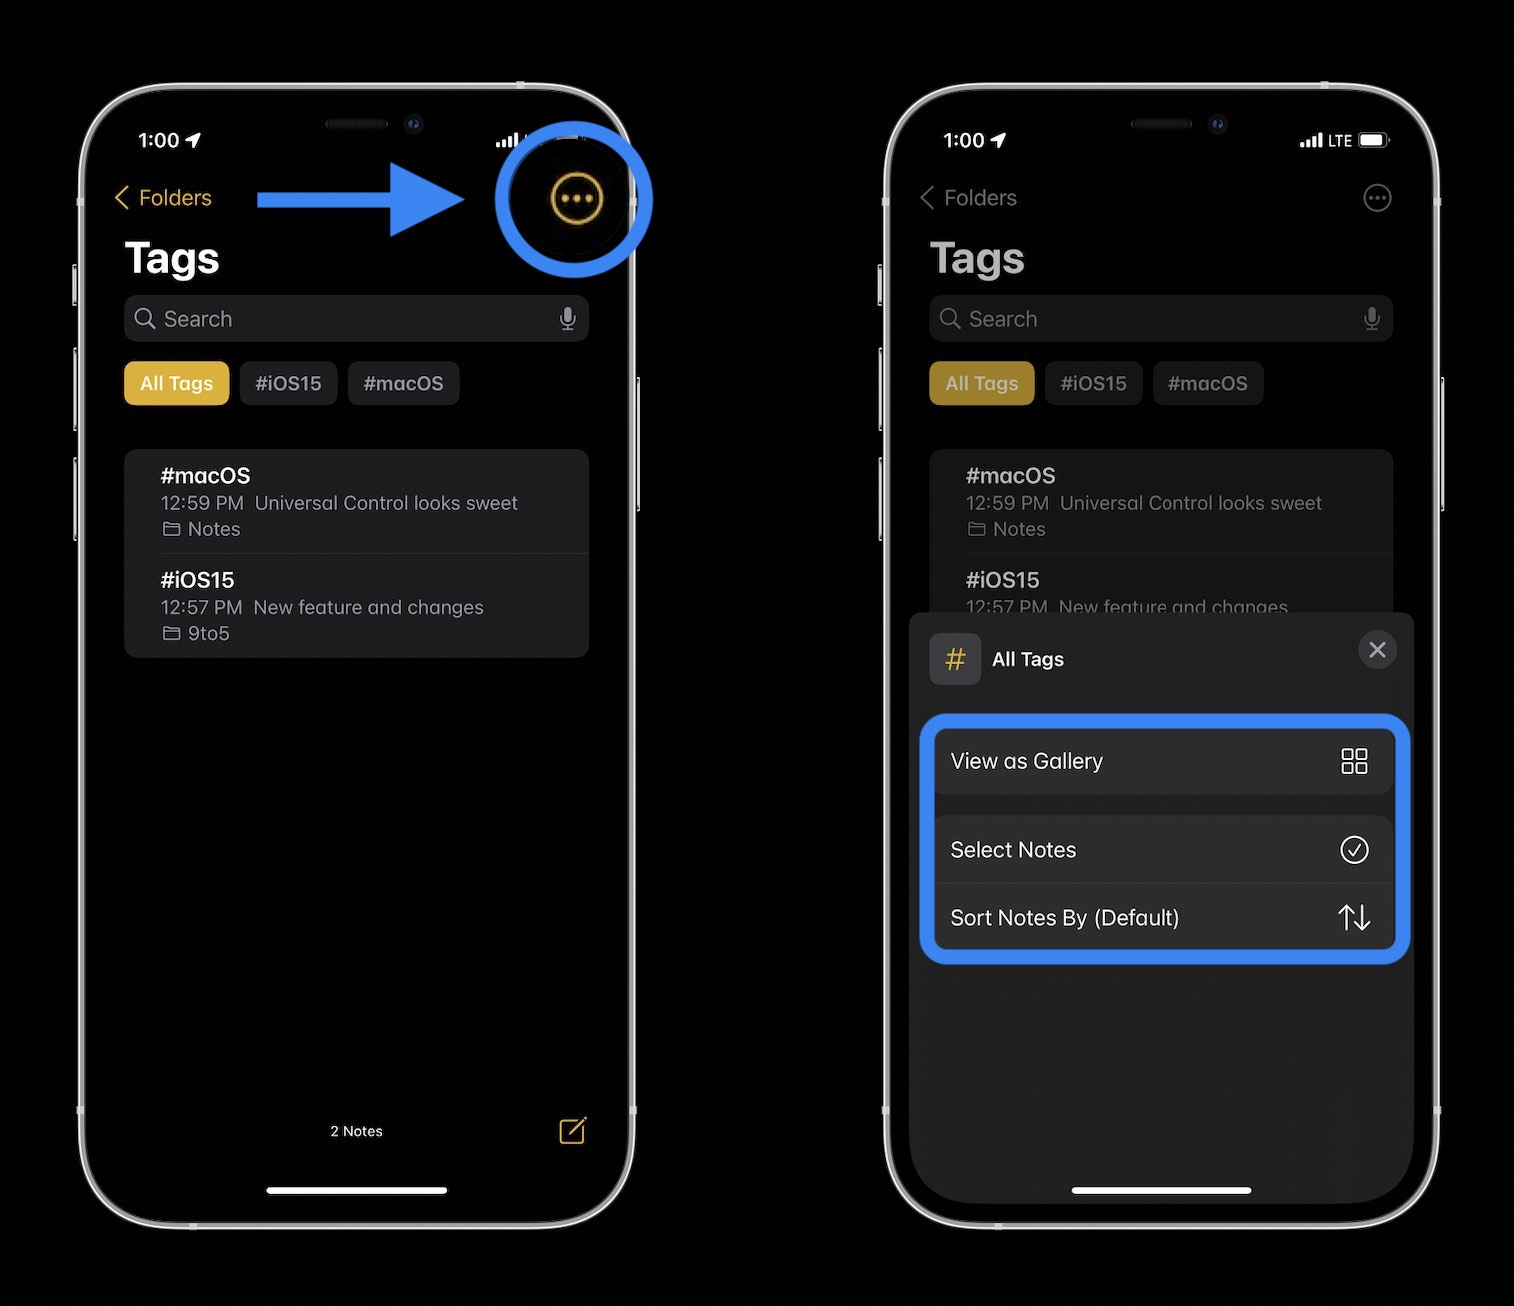 How to organize iPhone Notes with tags in iOS 15 walkthrough 2